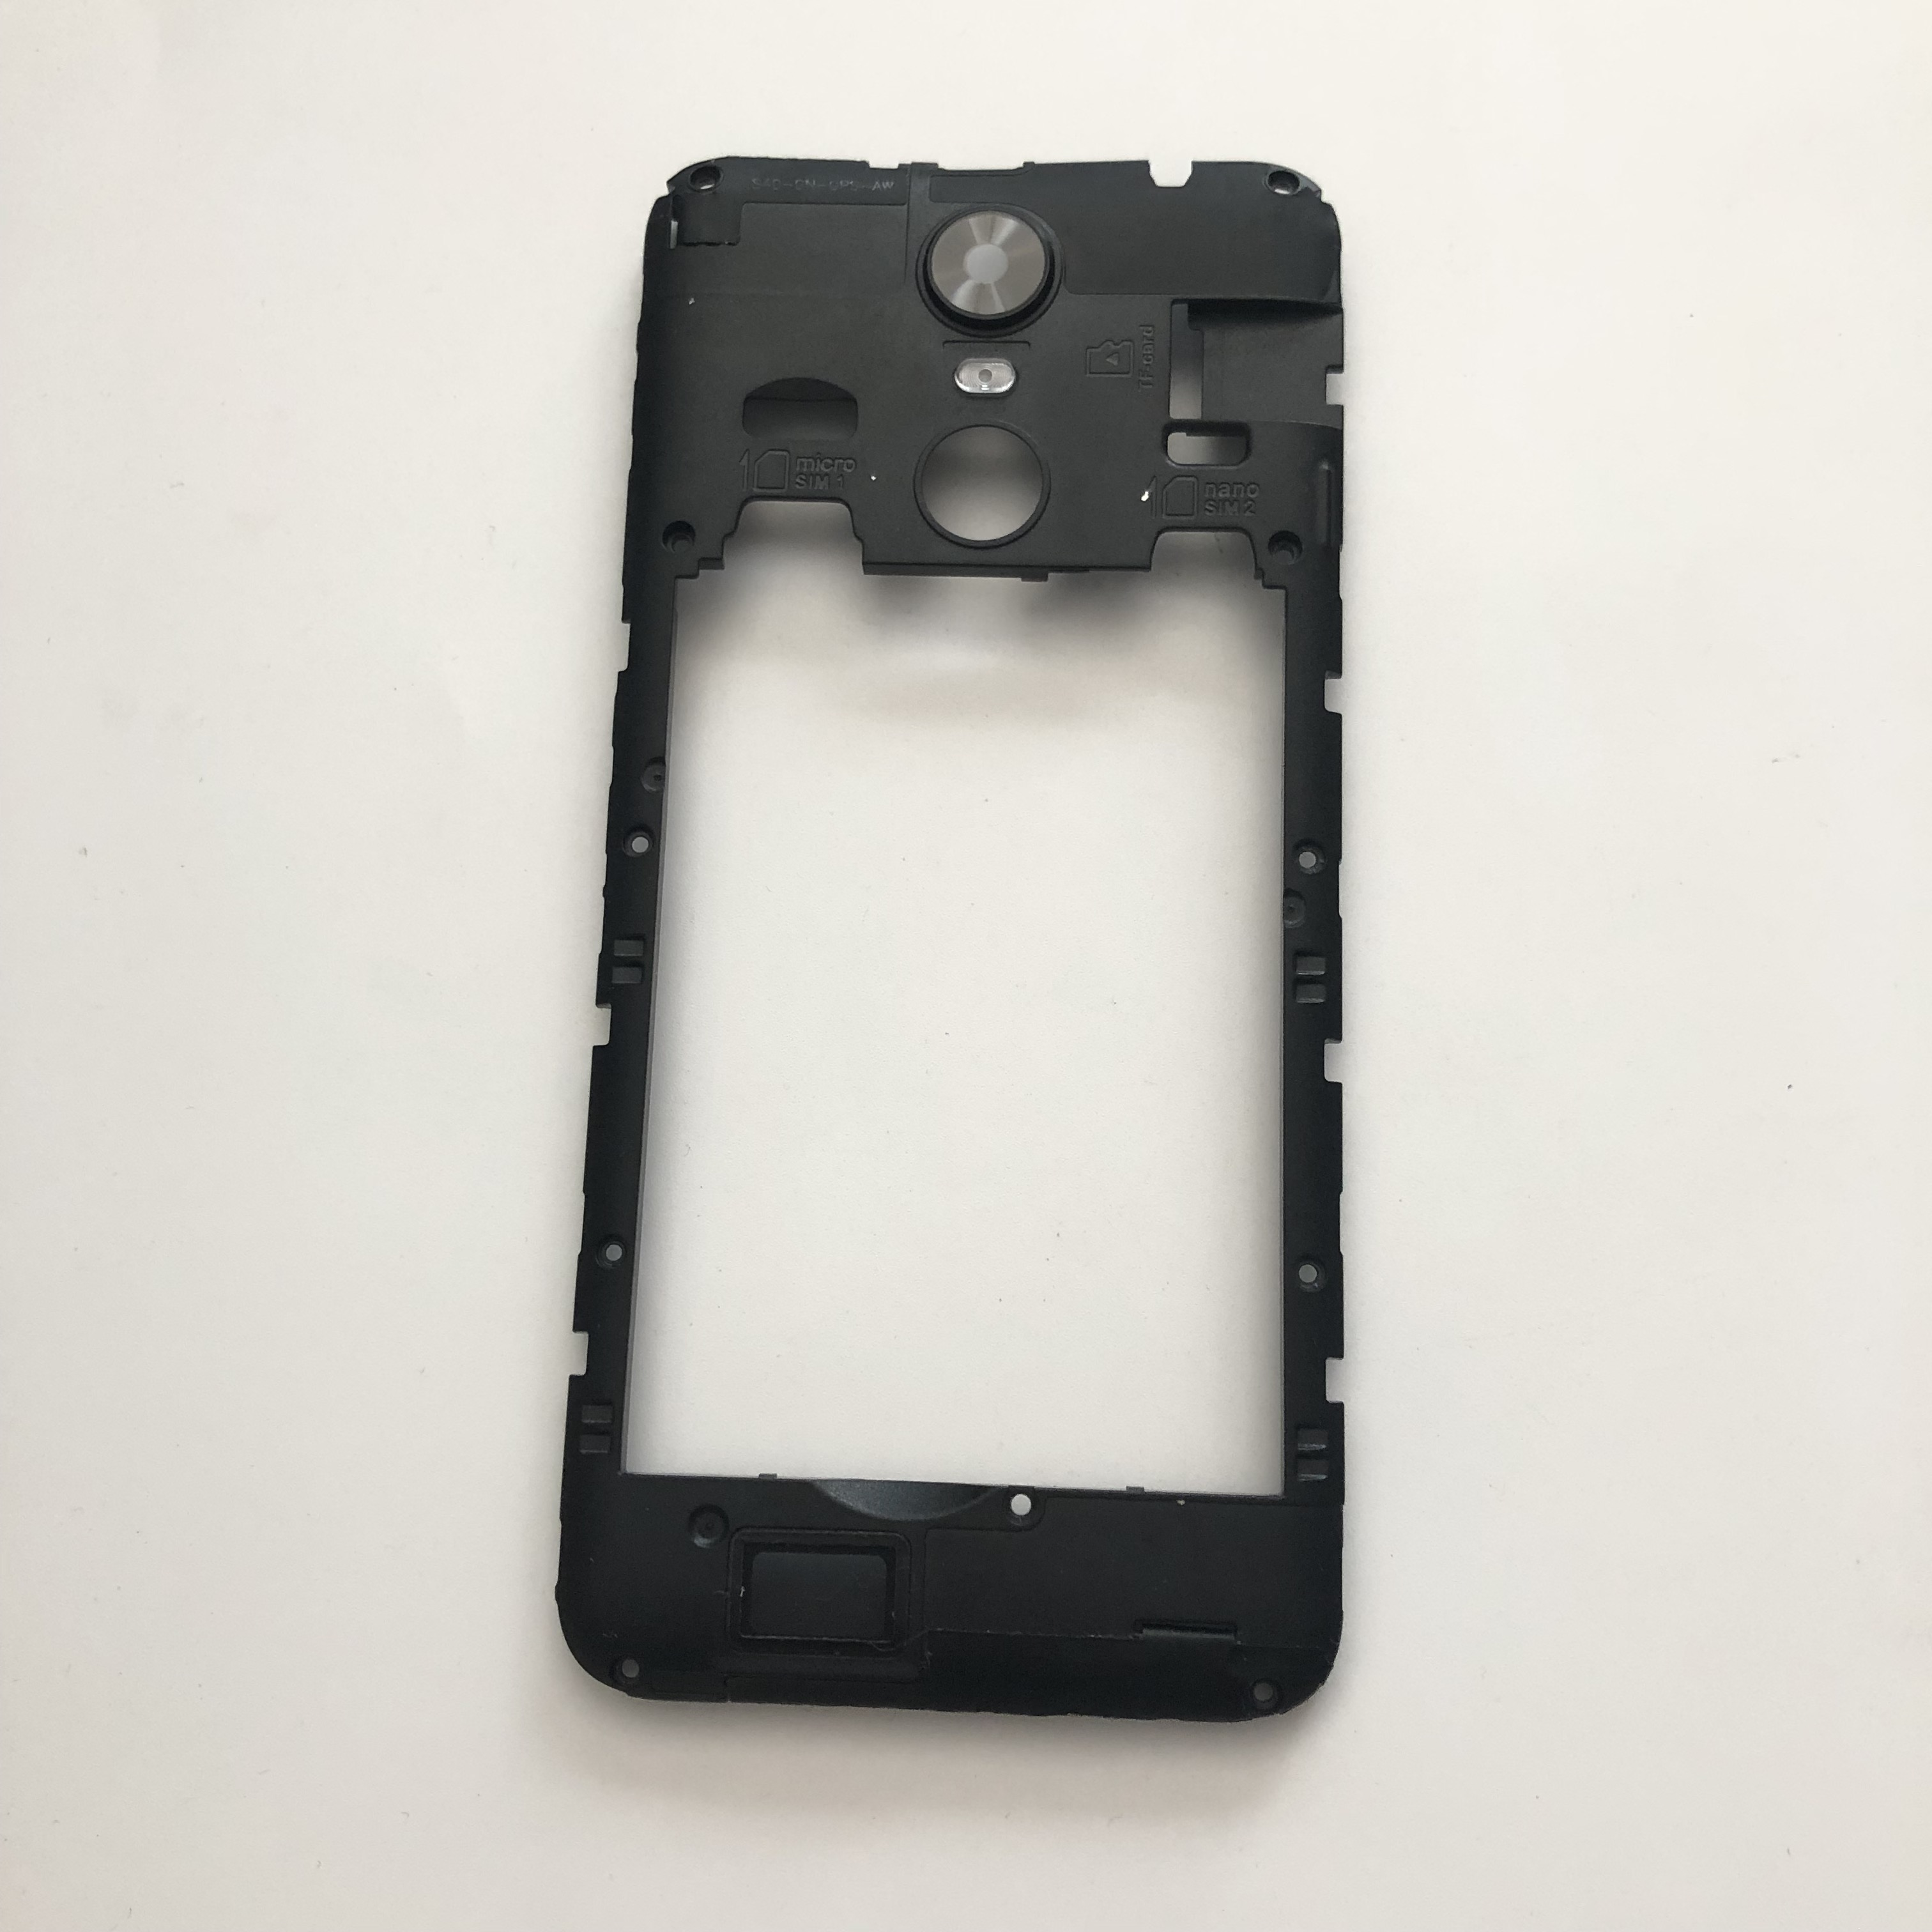 Shell-Case Oukitel Glass-Lens Camera Back-Frame Smartphone Used C8 For C8/Mtk6580a/Quad-core